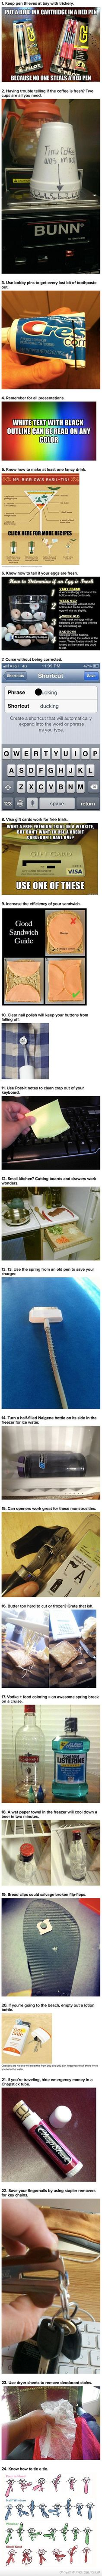 Simple Life Hacks- Mainly for the last one...